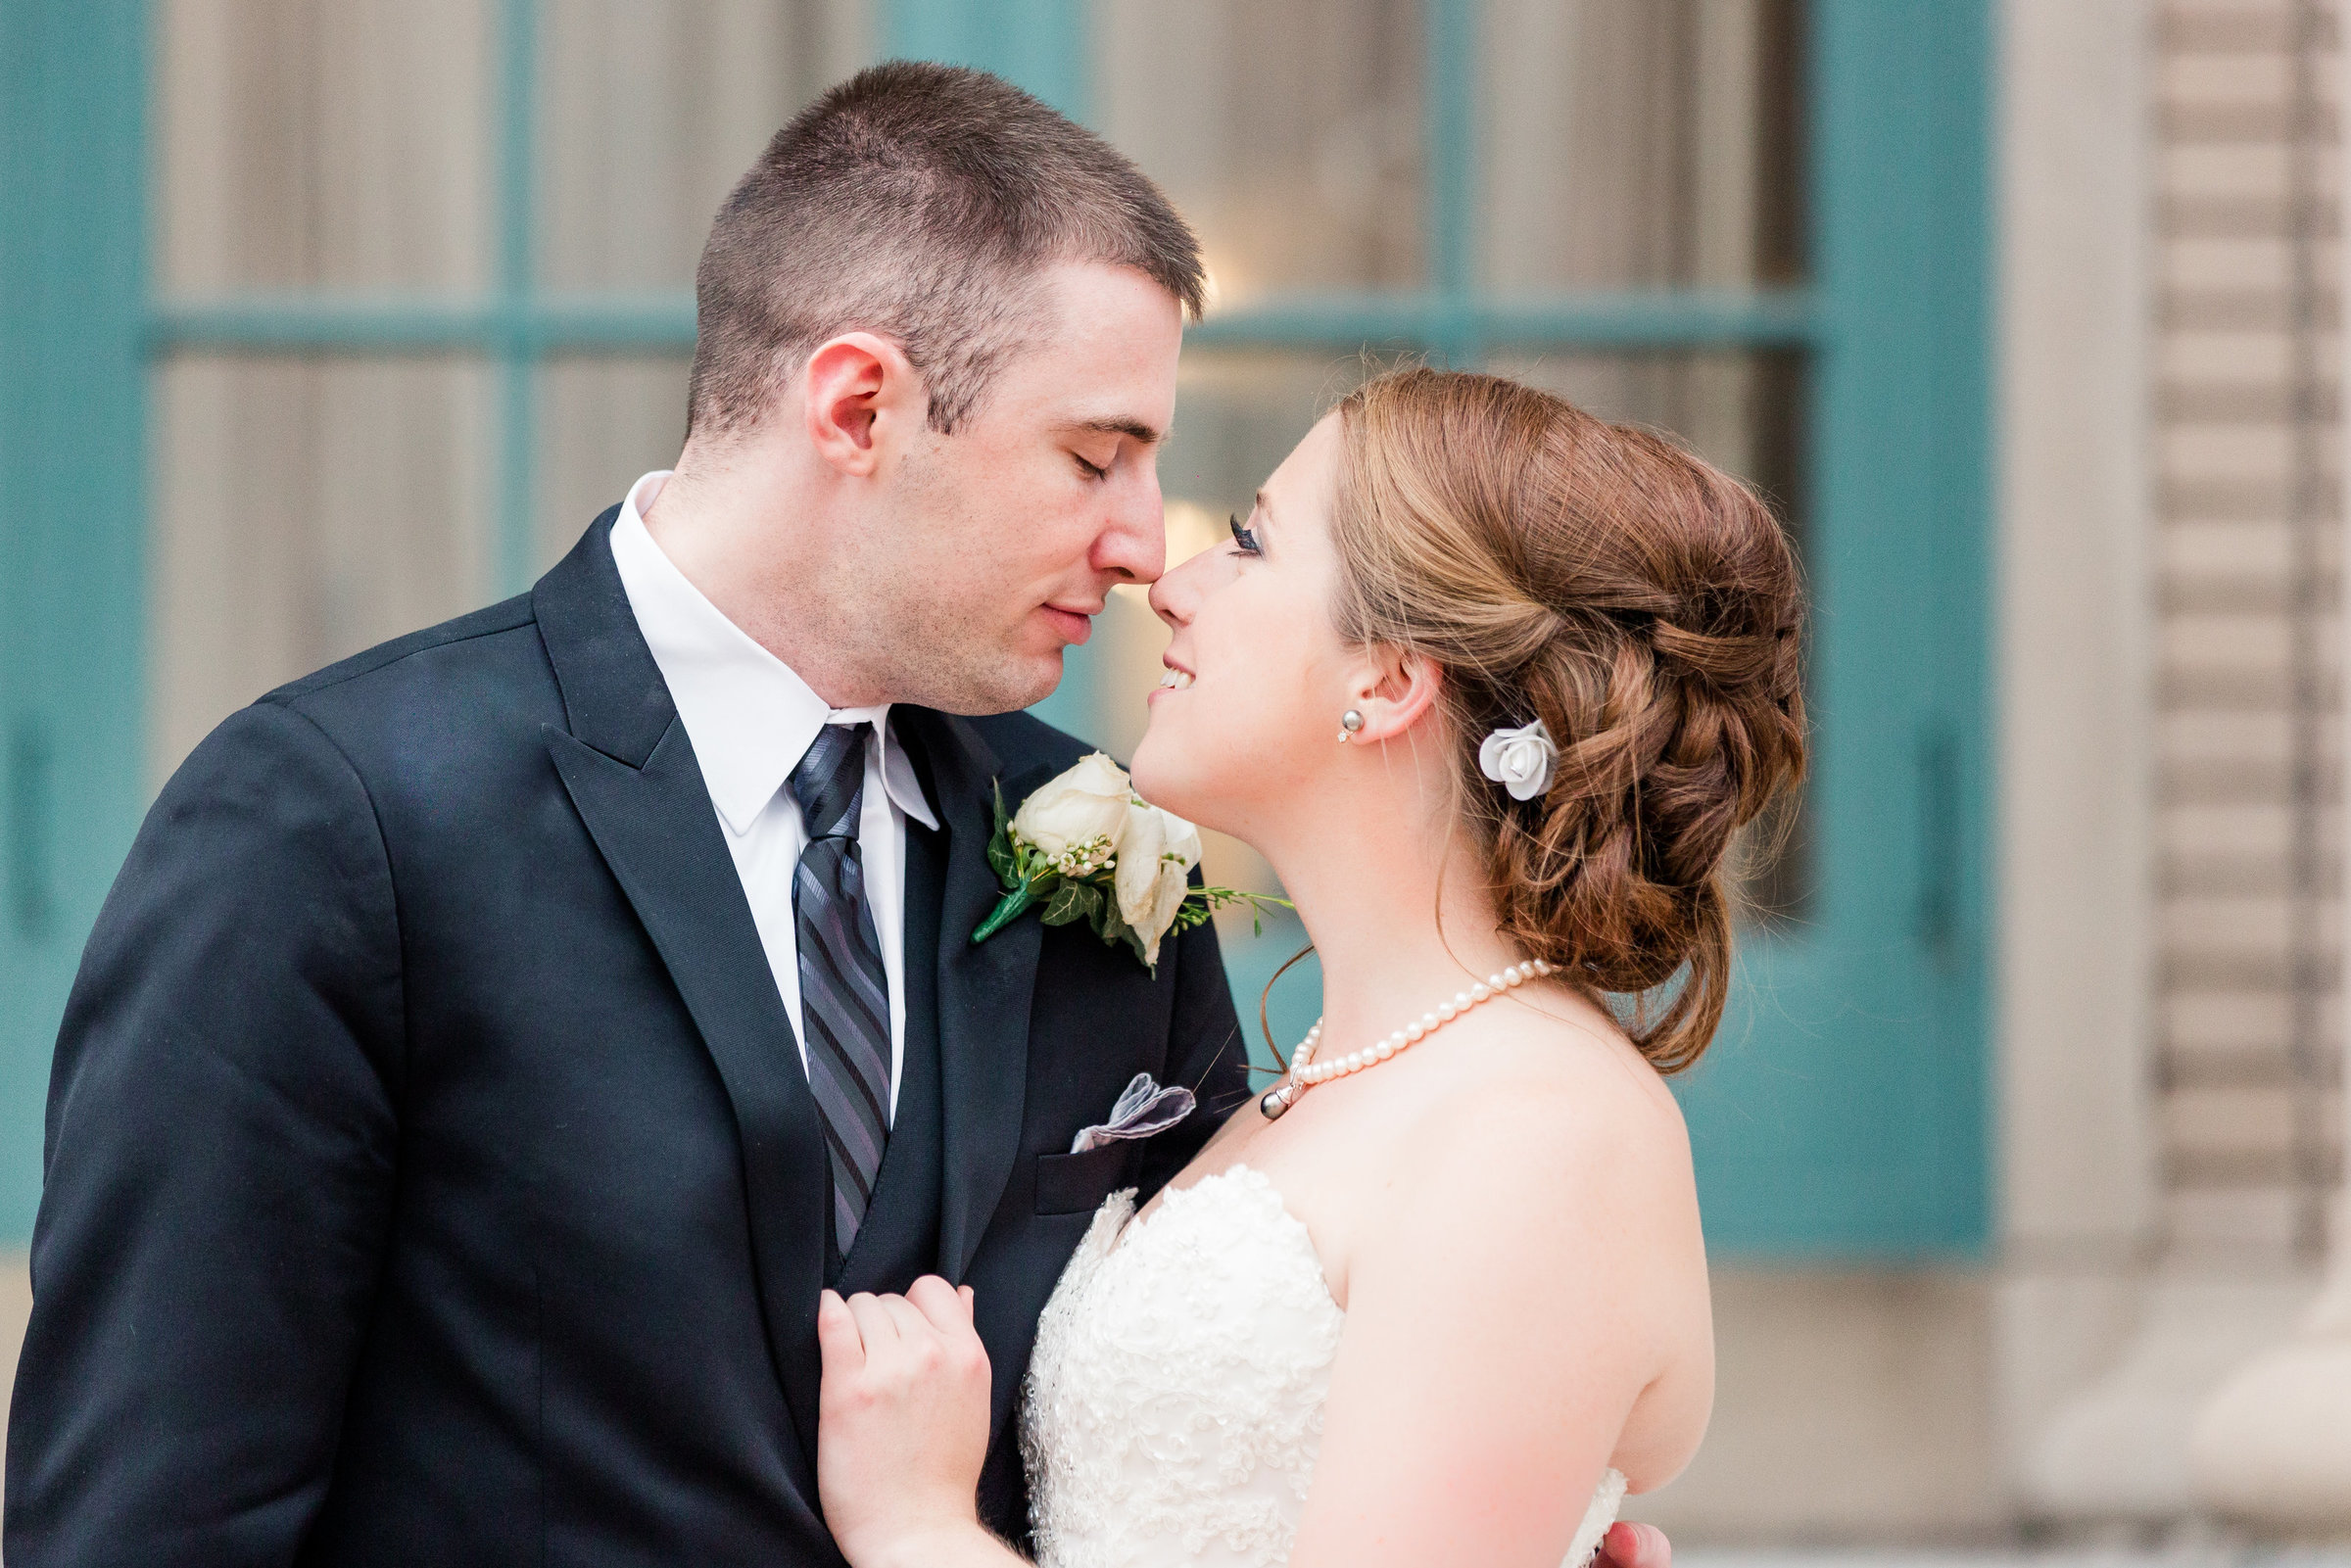 andrew-nichole-wedding-historic-post-office-1